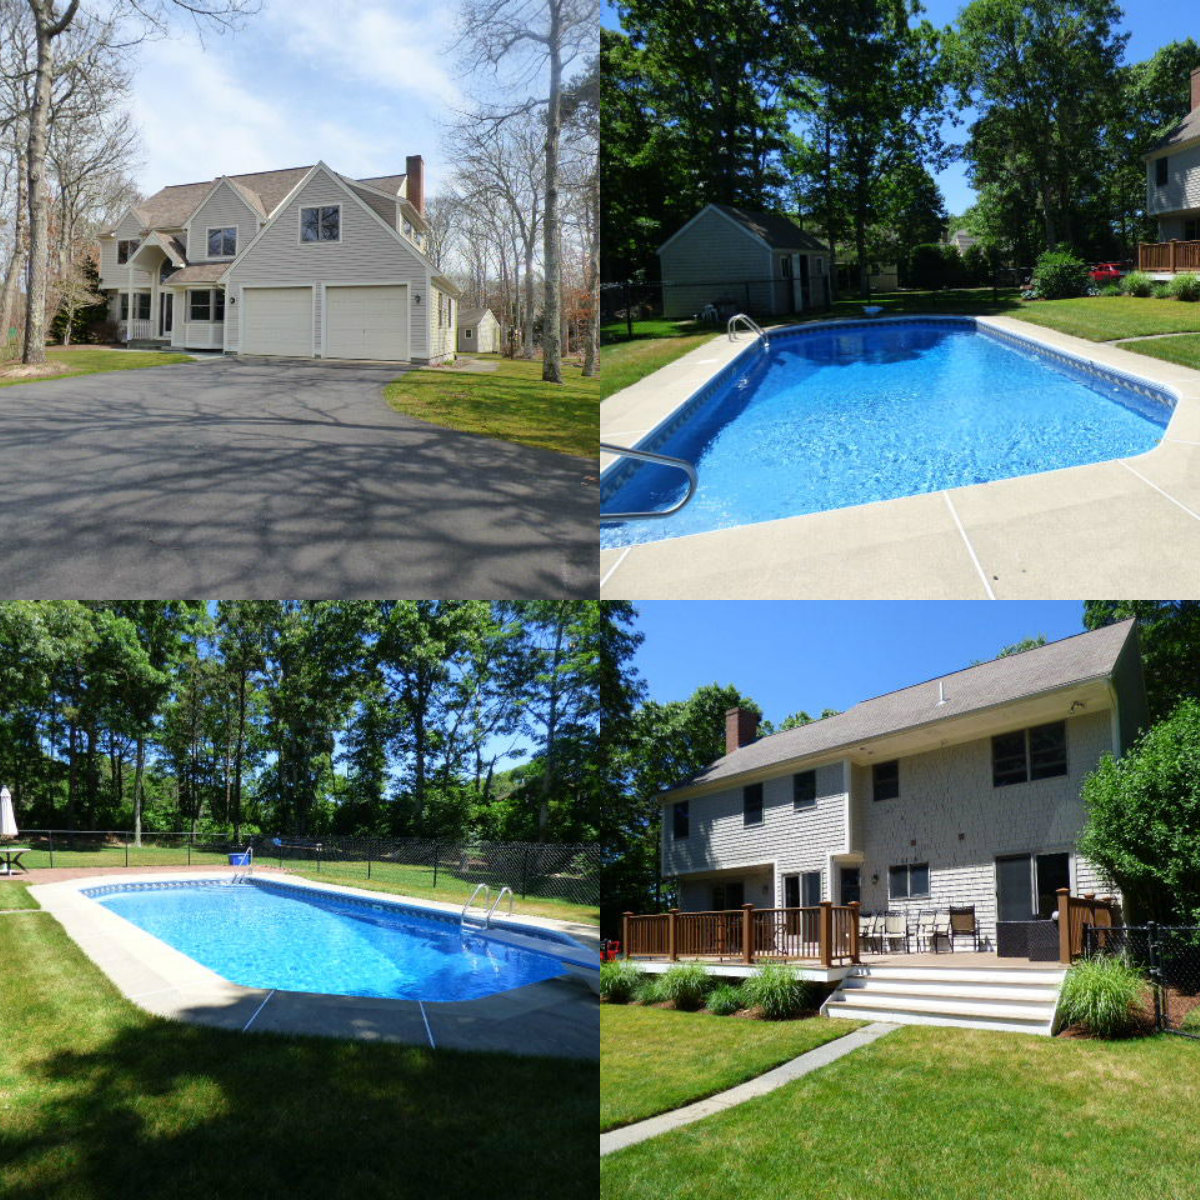 Images of pool at 11 Barque Circle in East Dennis Cape Cod MA